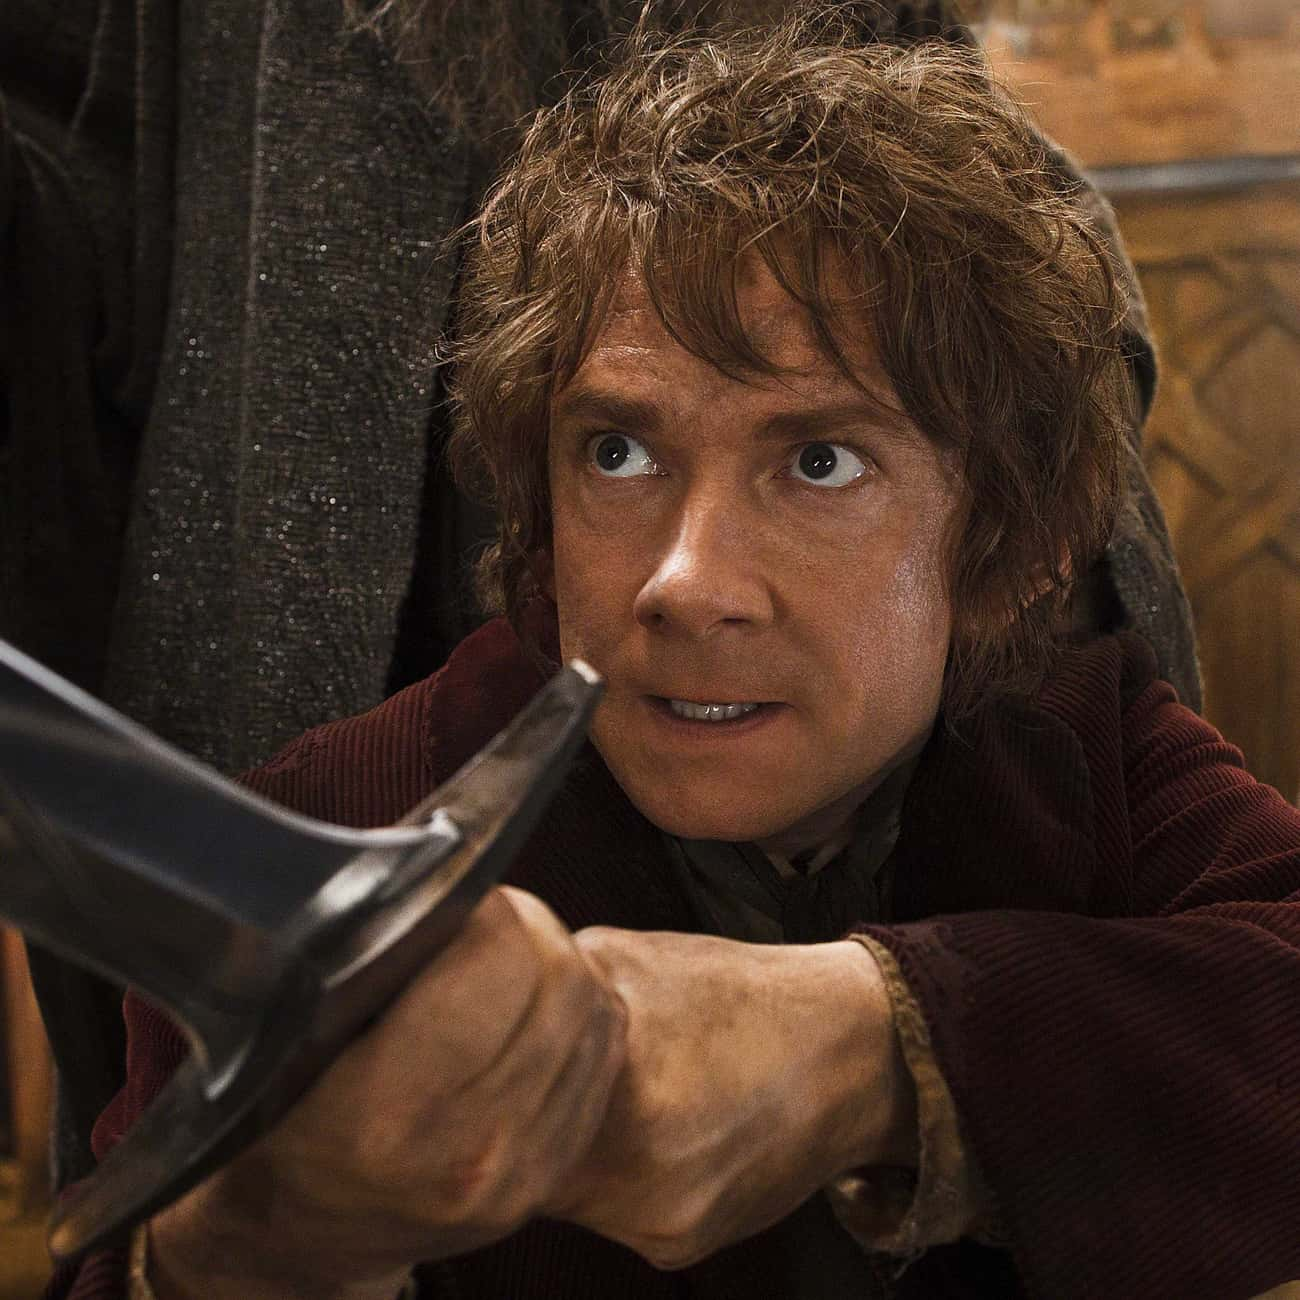 Don't Be Shy is listed (or ranked) 2 on the list The Hobbit: The Desolation of Smaug Movie Quotes